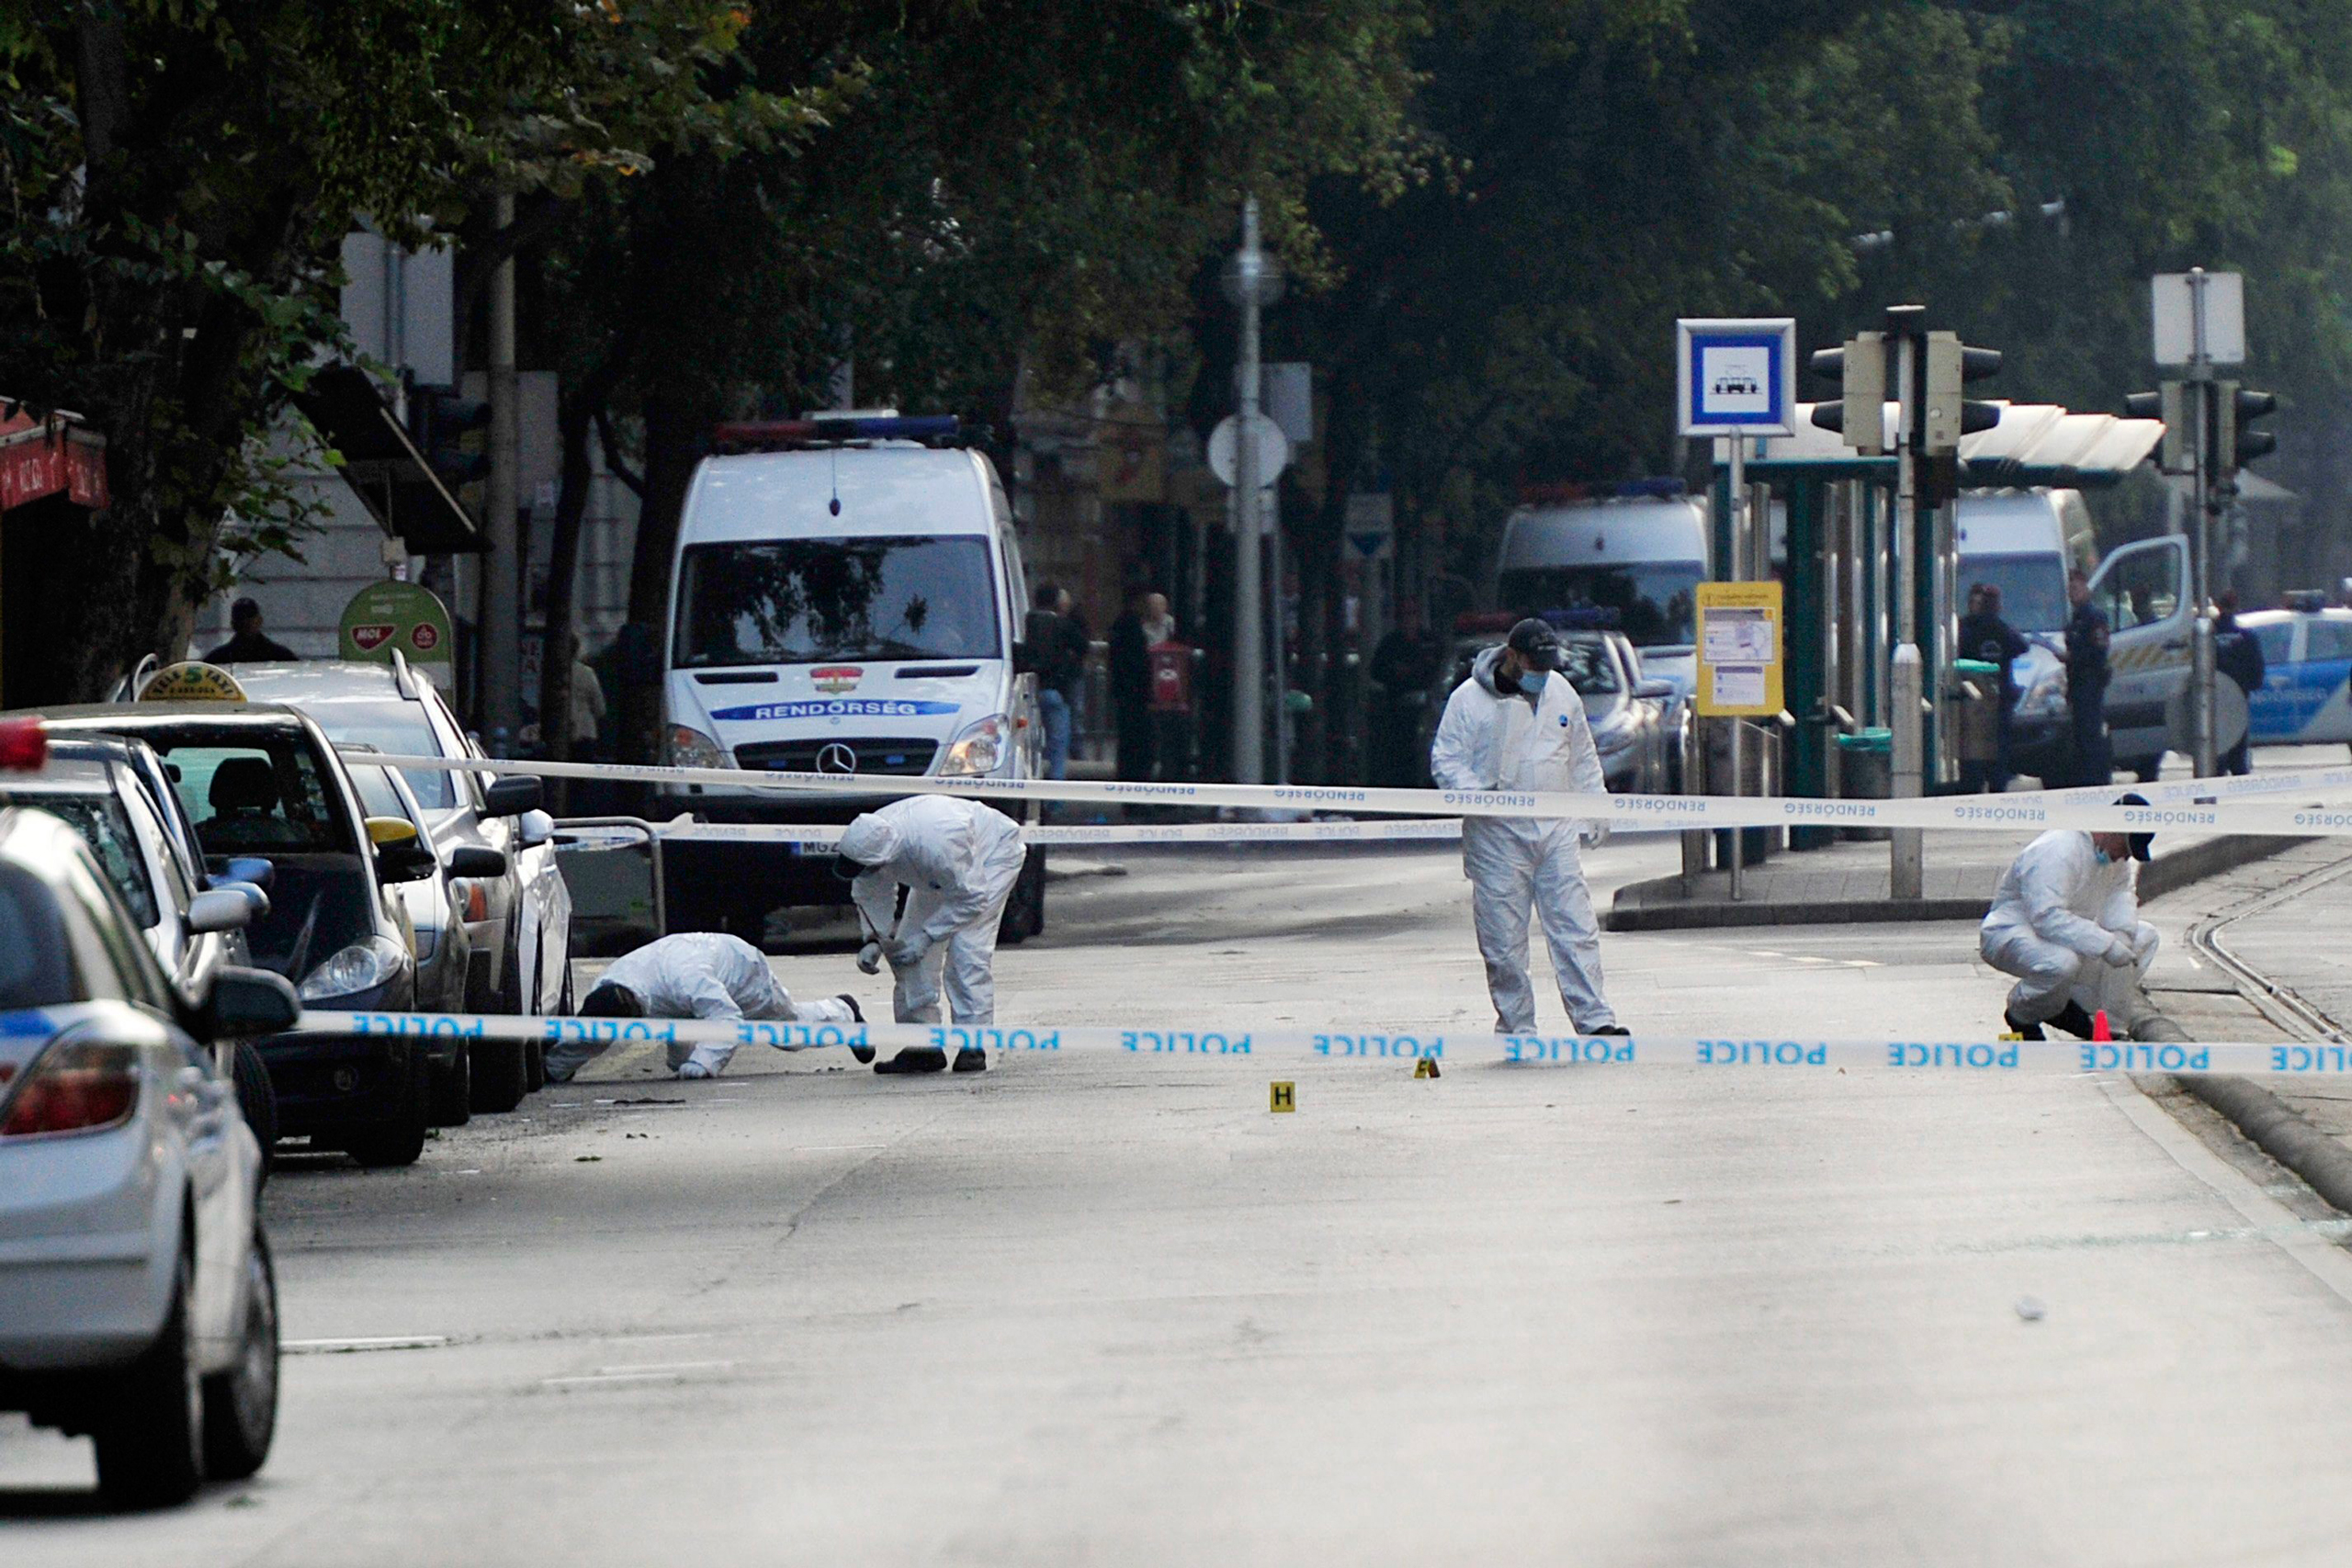 Police forensic experts examine the scene of an explosion that occurred late on Saturday night in central Budapest, Hungary, on Sept. 25, 2016.